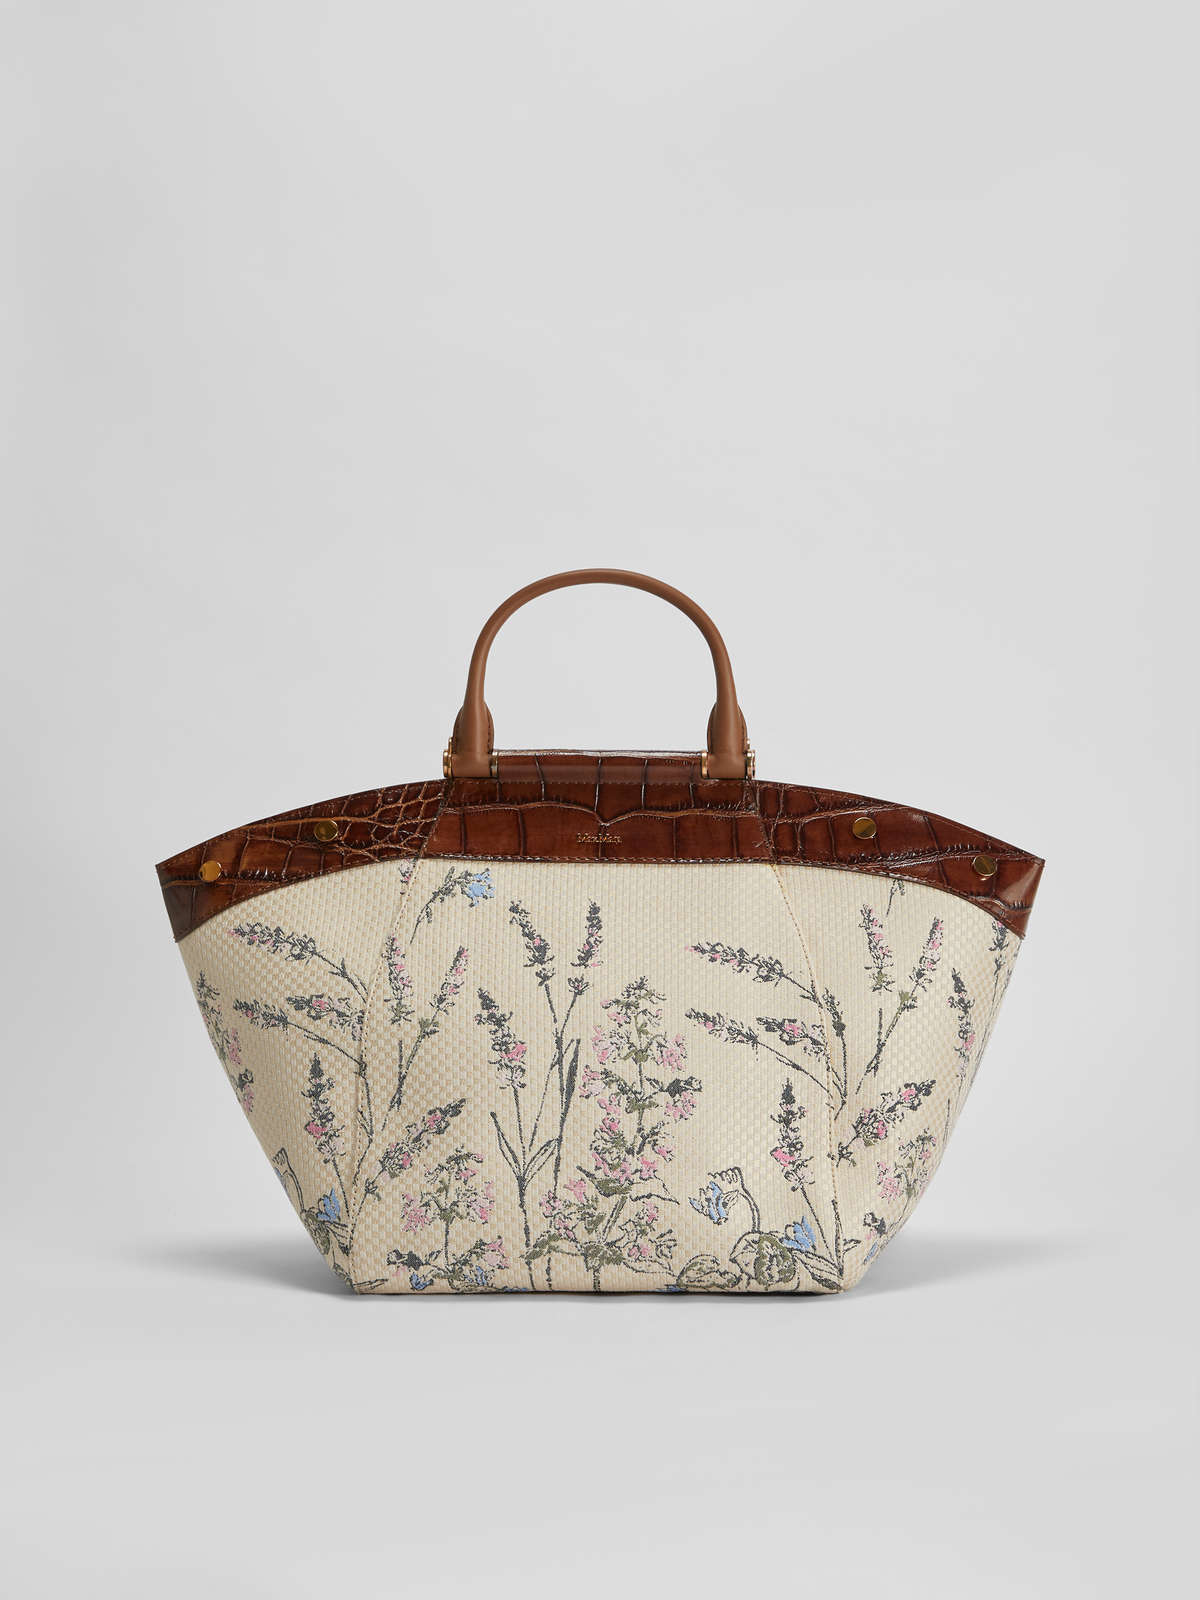 Tote Bag in jacquard fabric - Max Mara